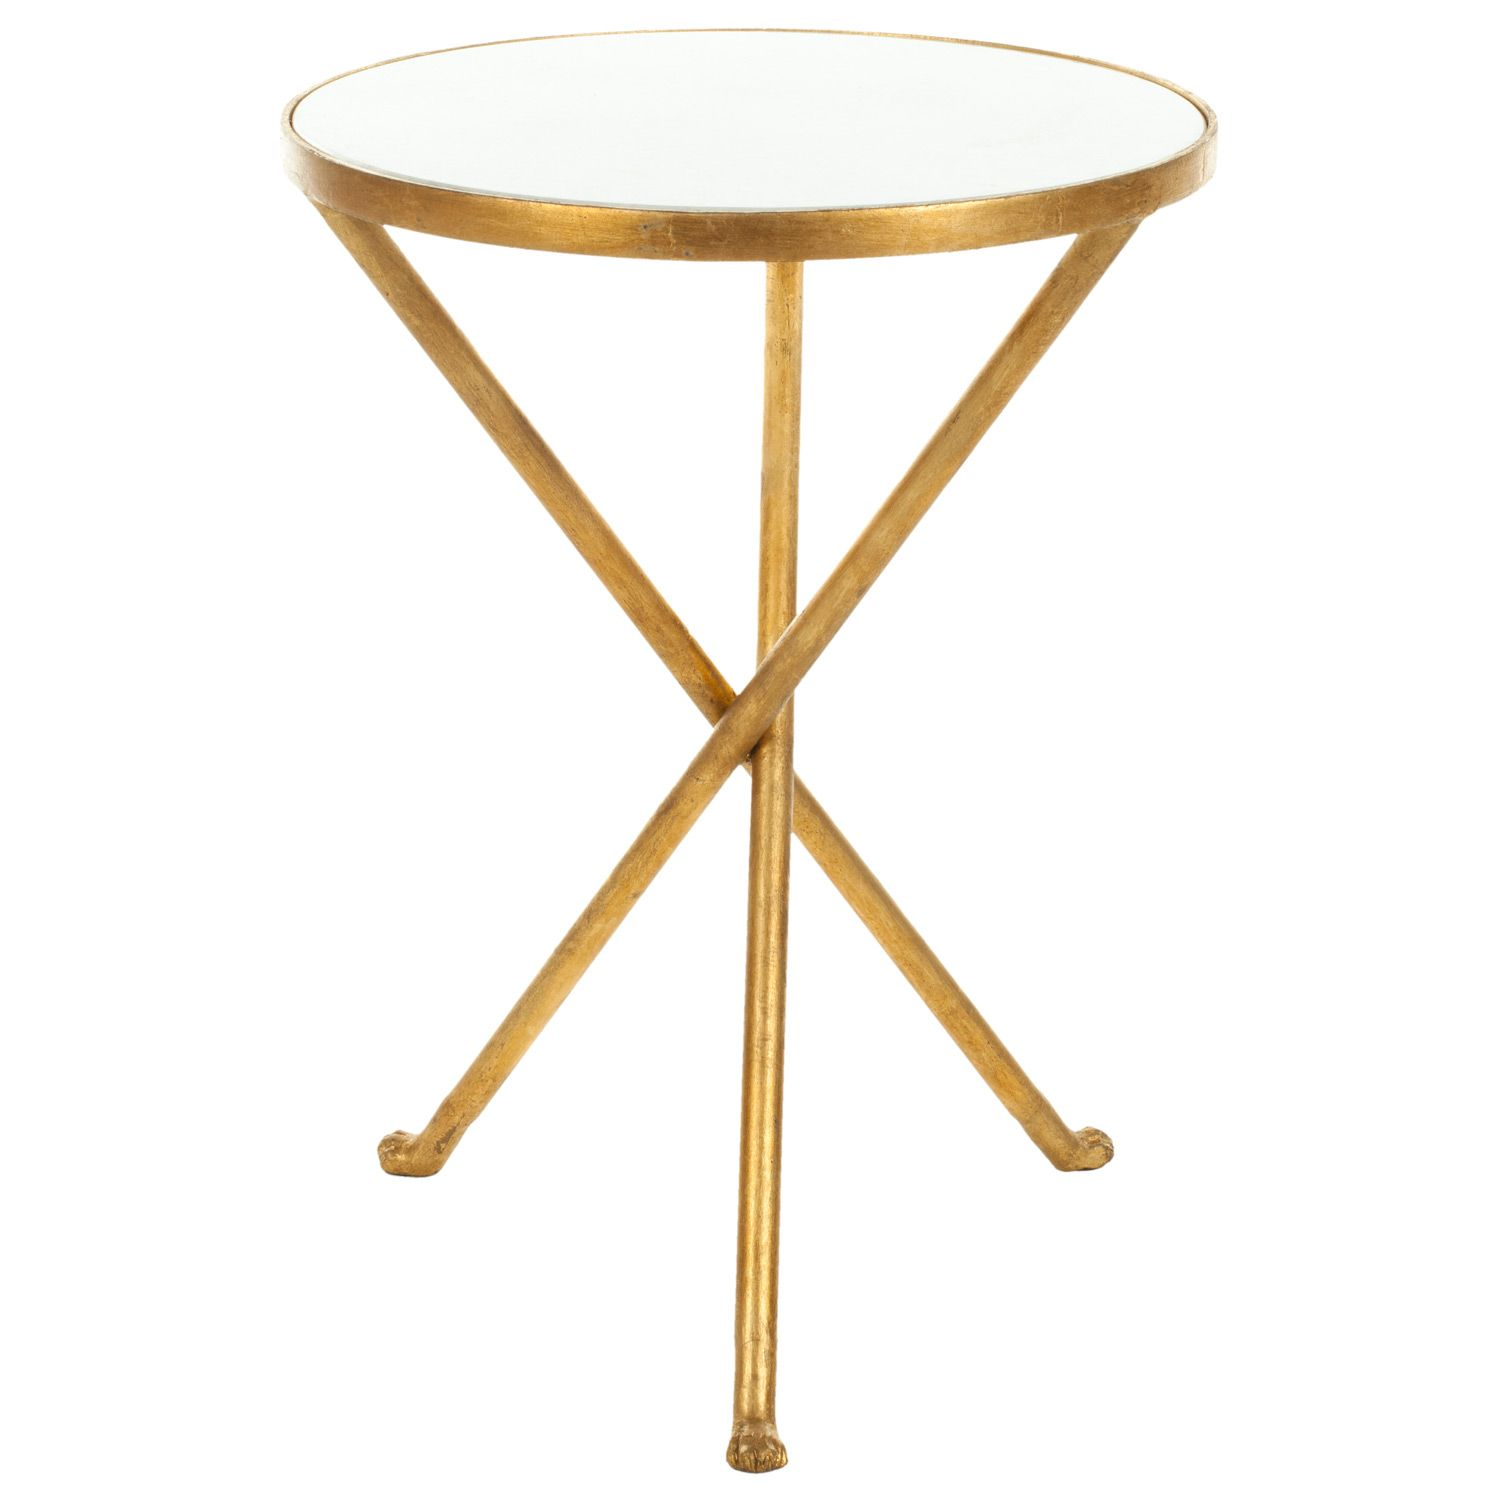 marcie accent table layla grayce laylagrayce and marble top round featuring burnished brass patina this cast iron furnishing expresses textured interest with white funky coffee